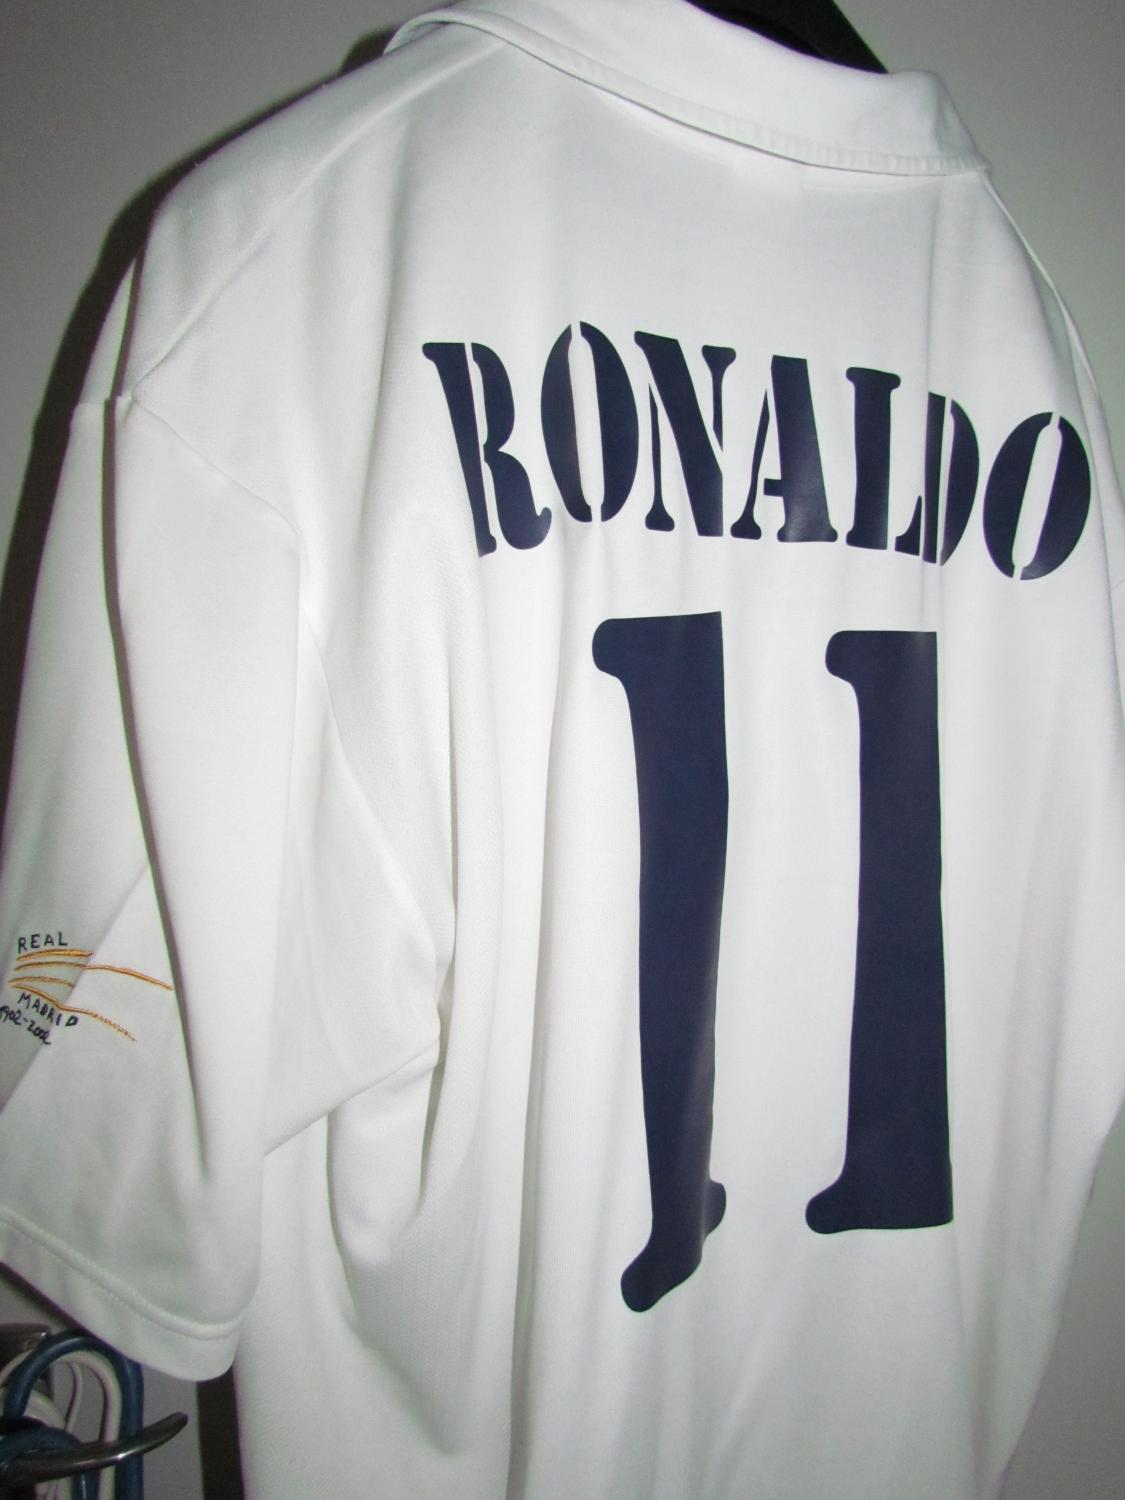 best sneakers 6d245 c2e89 Real Madrid Home football shirt 2002 - 2003.